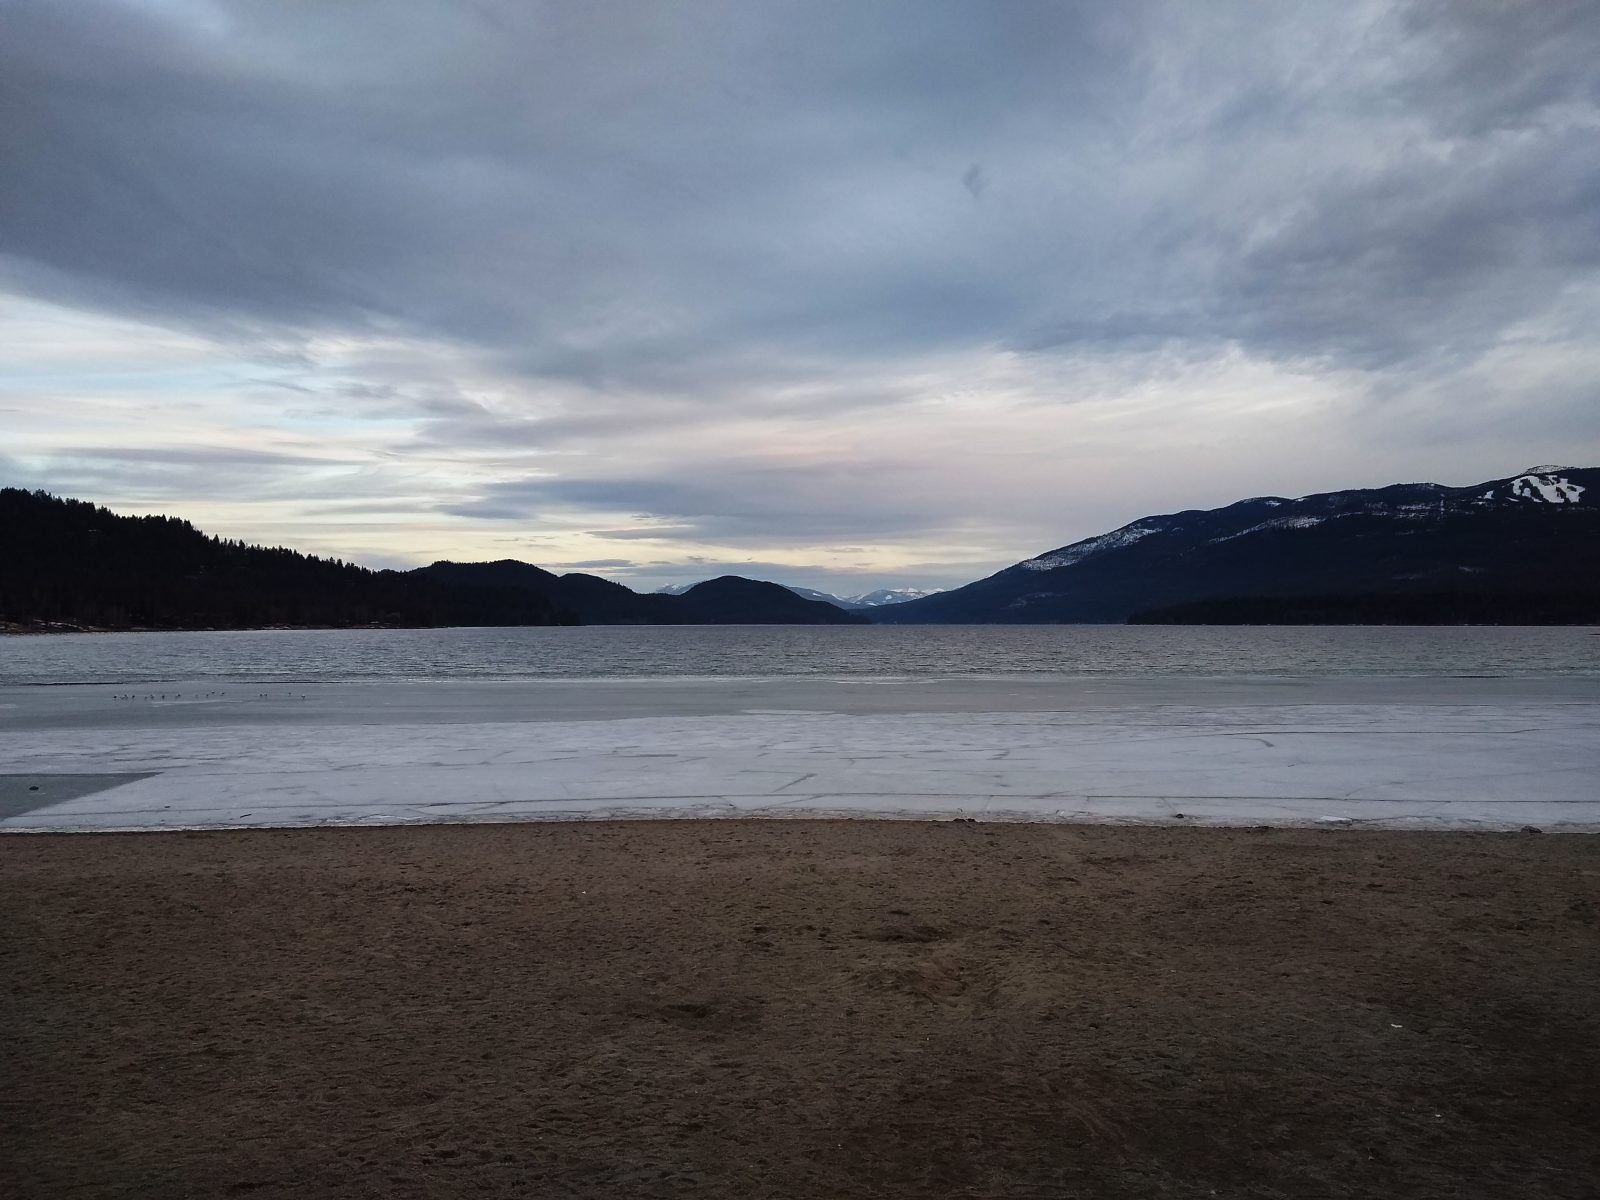 Whitefish Lake - March 23, 2020